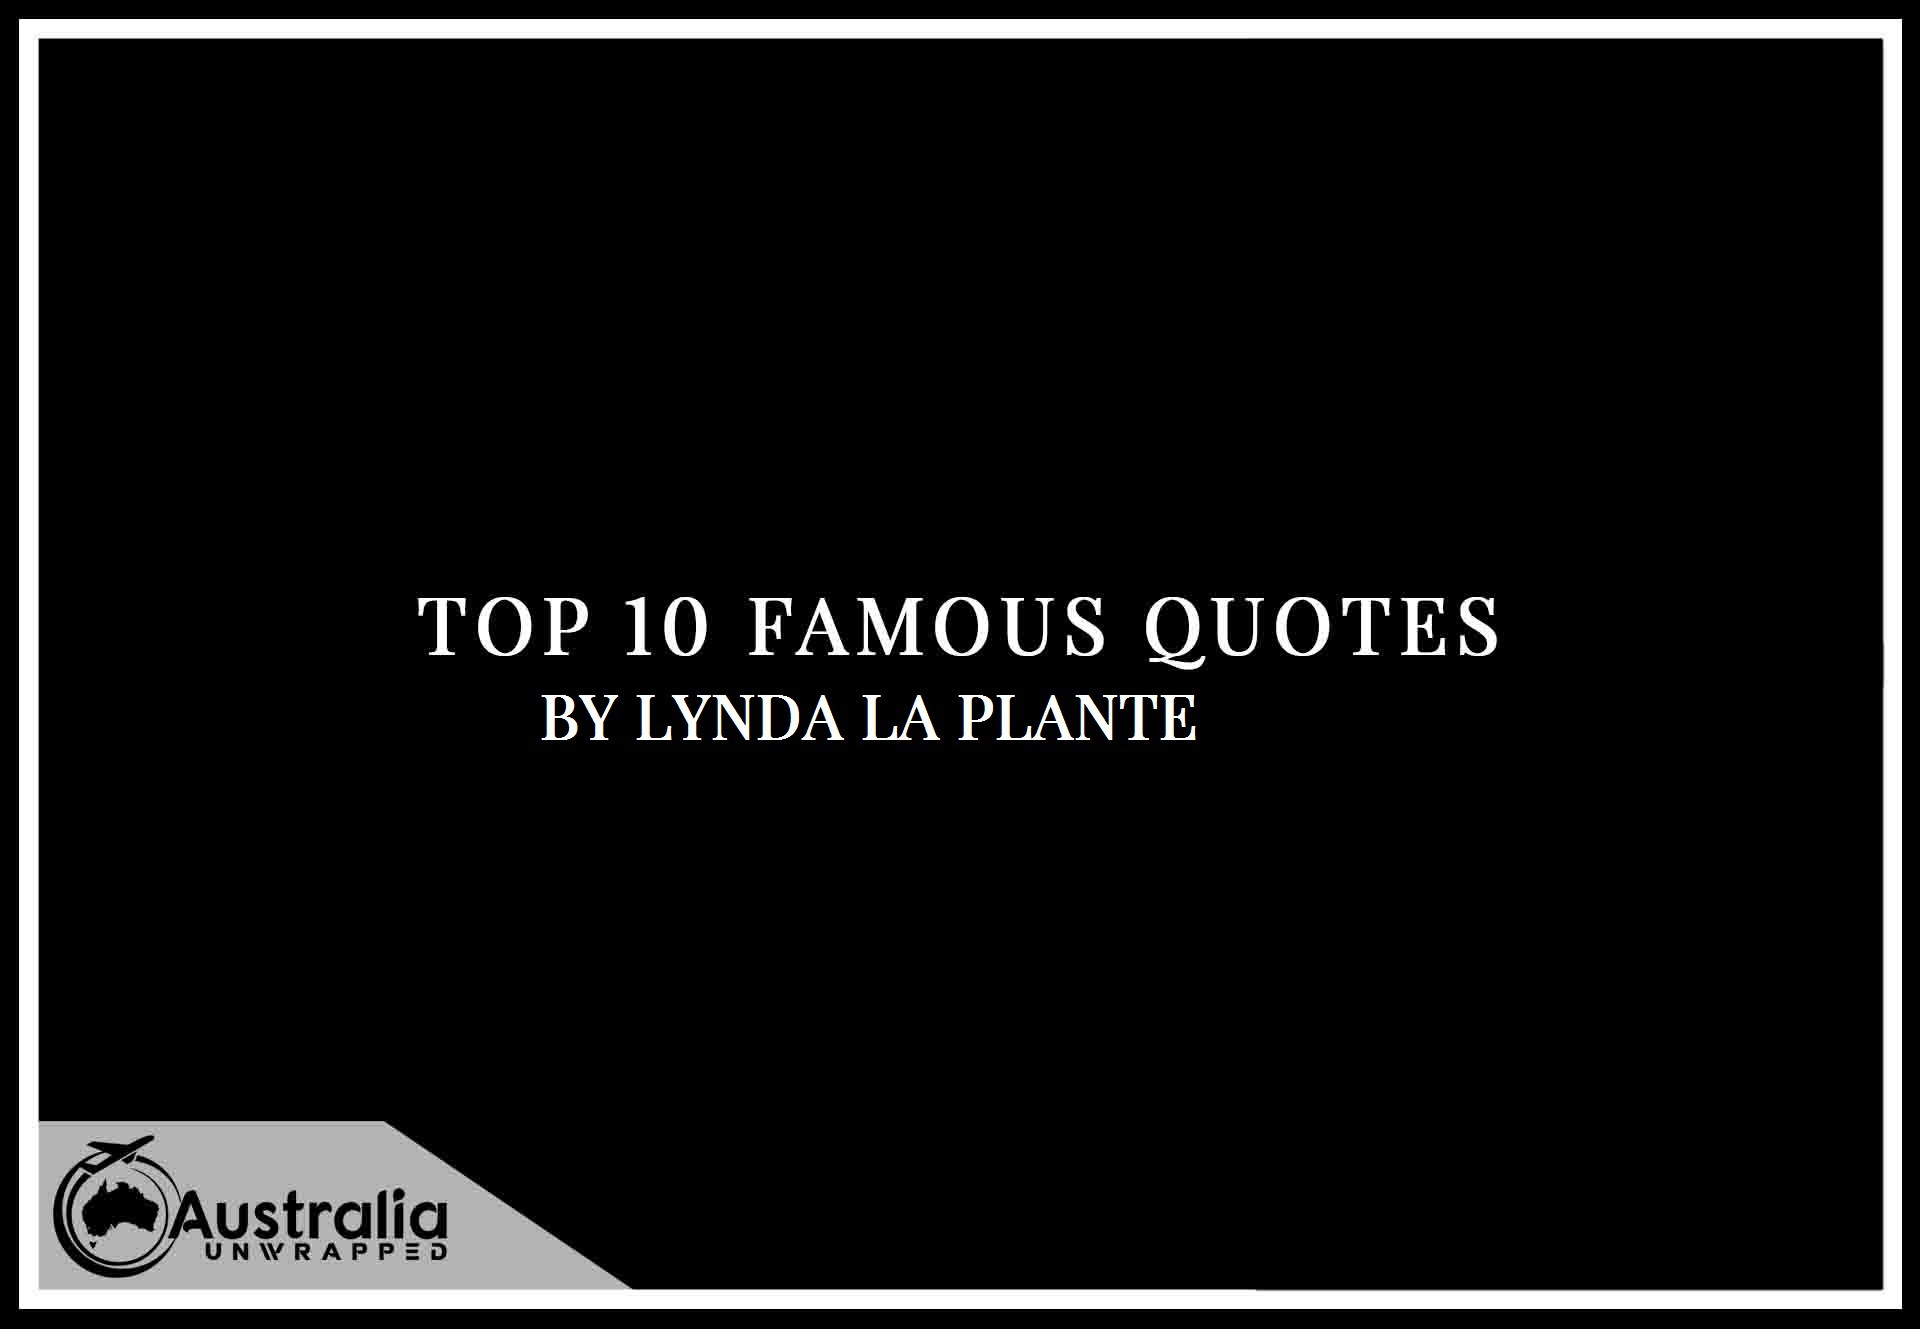 Lynda La Plante's Top 10 Popular and Famous Quotes